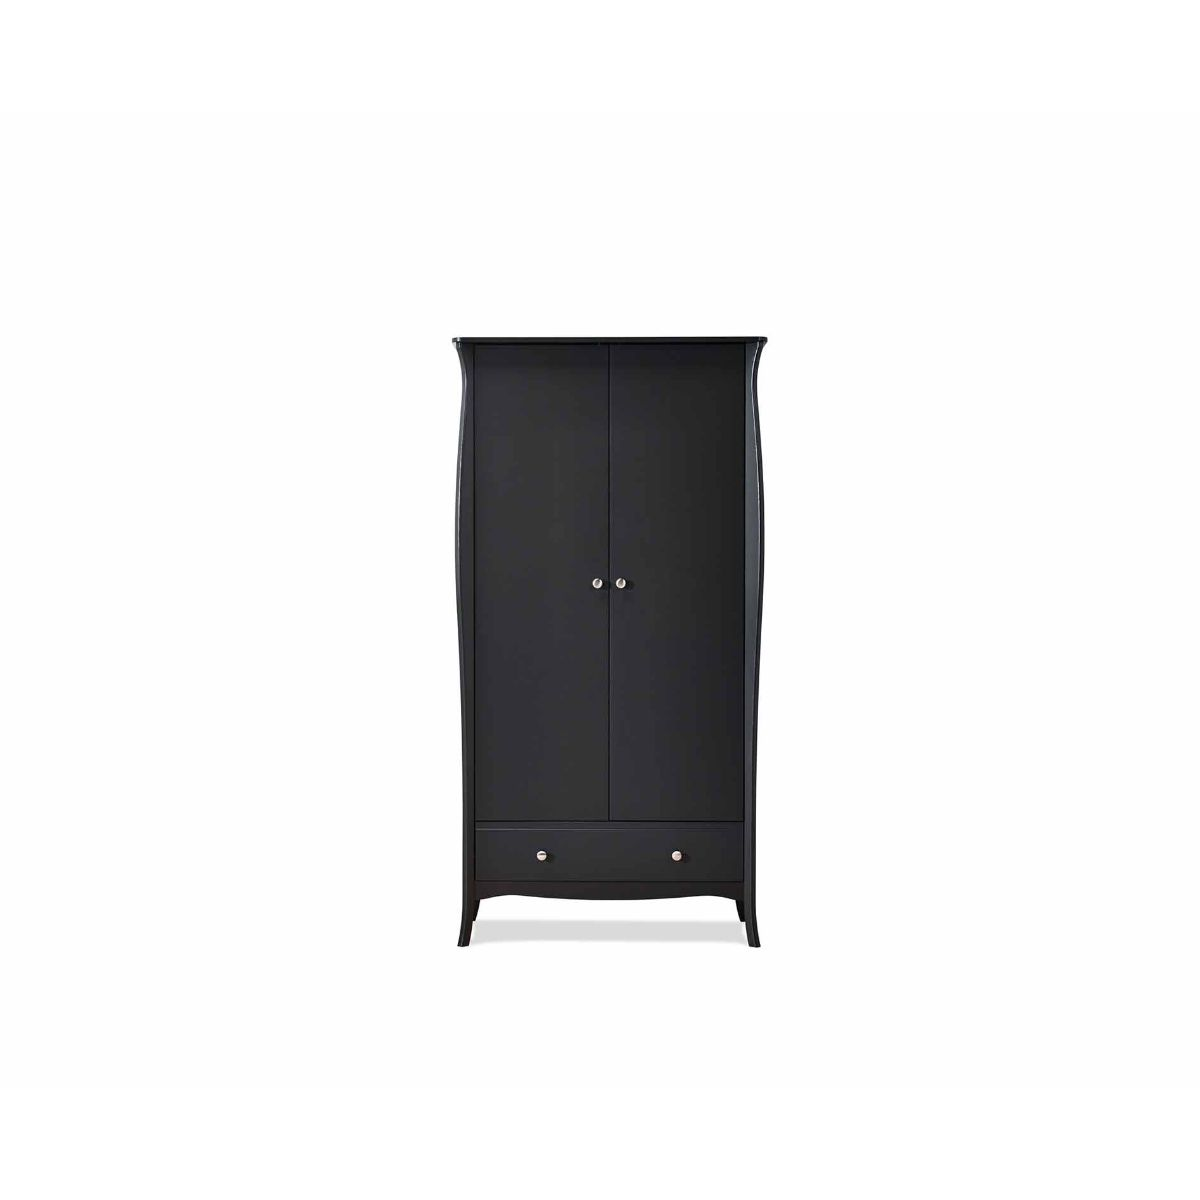 Steens Baroque 2 Door Wardrobe, Black